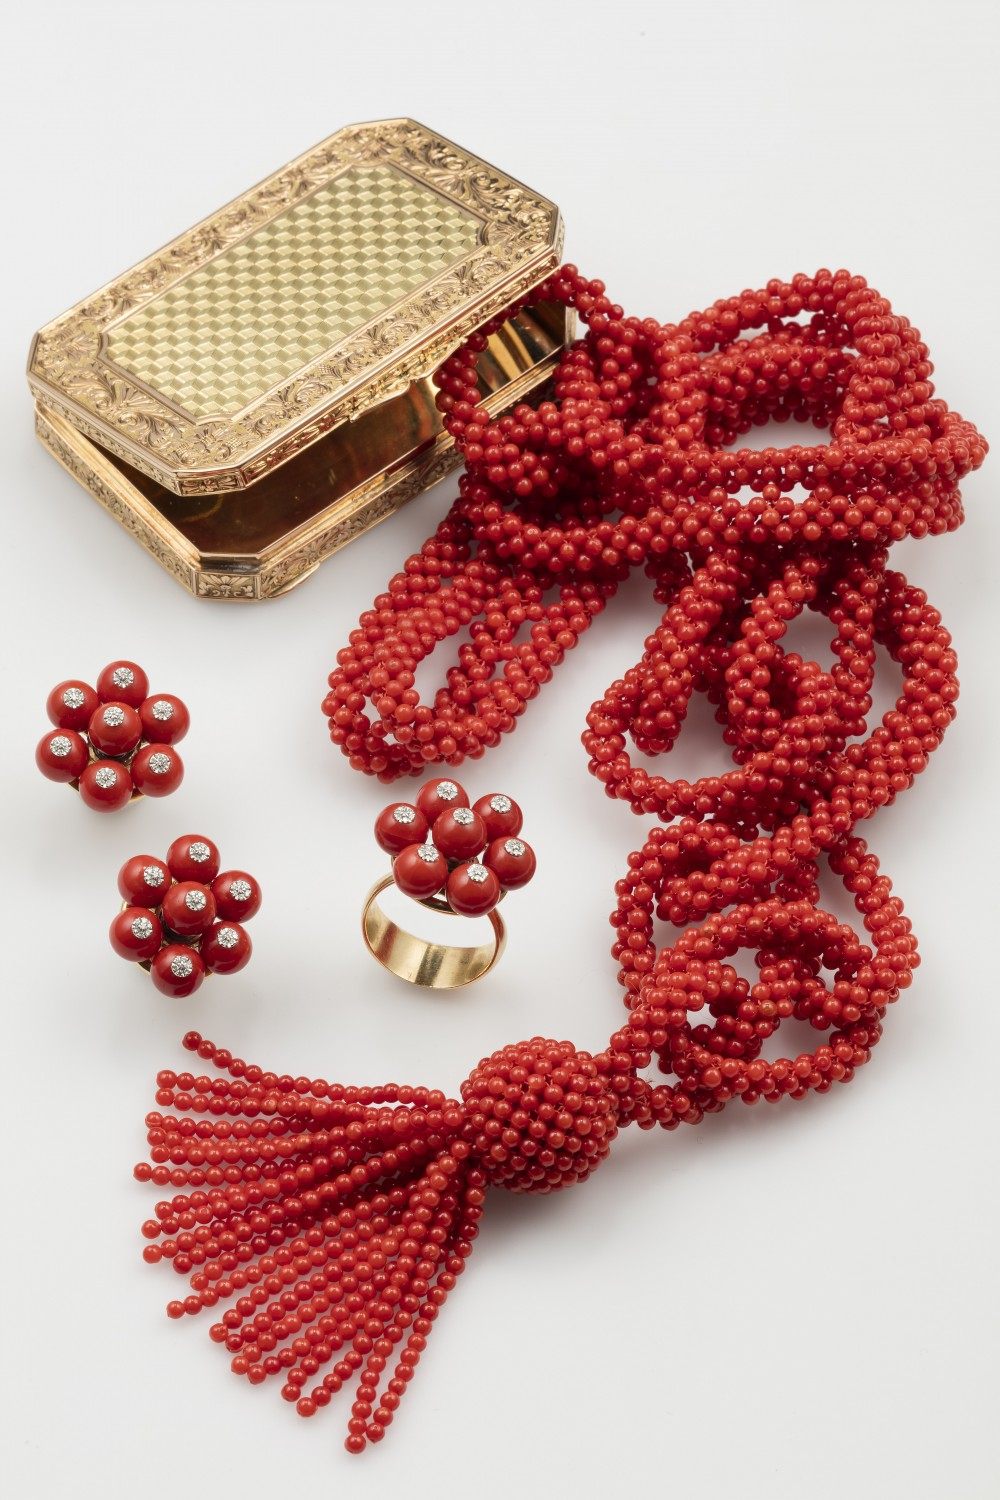 The Fine Coral Jewels auction takes place on 7 June.